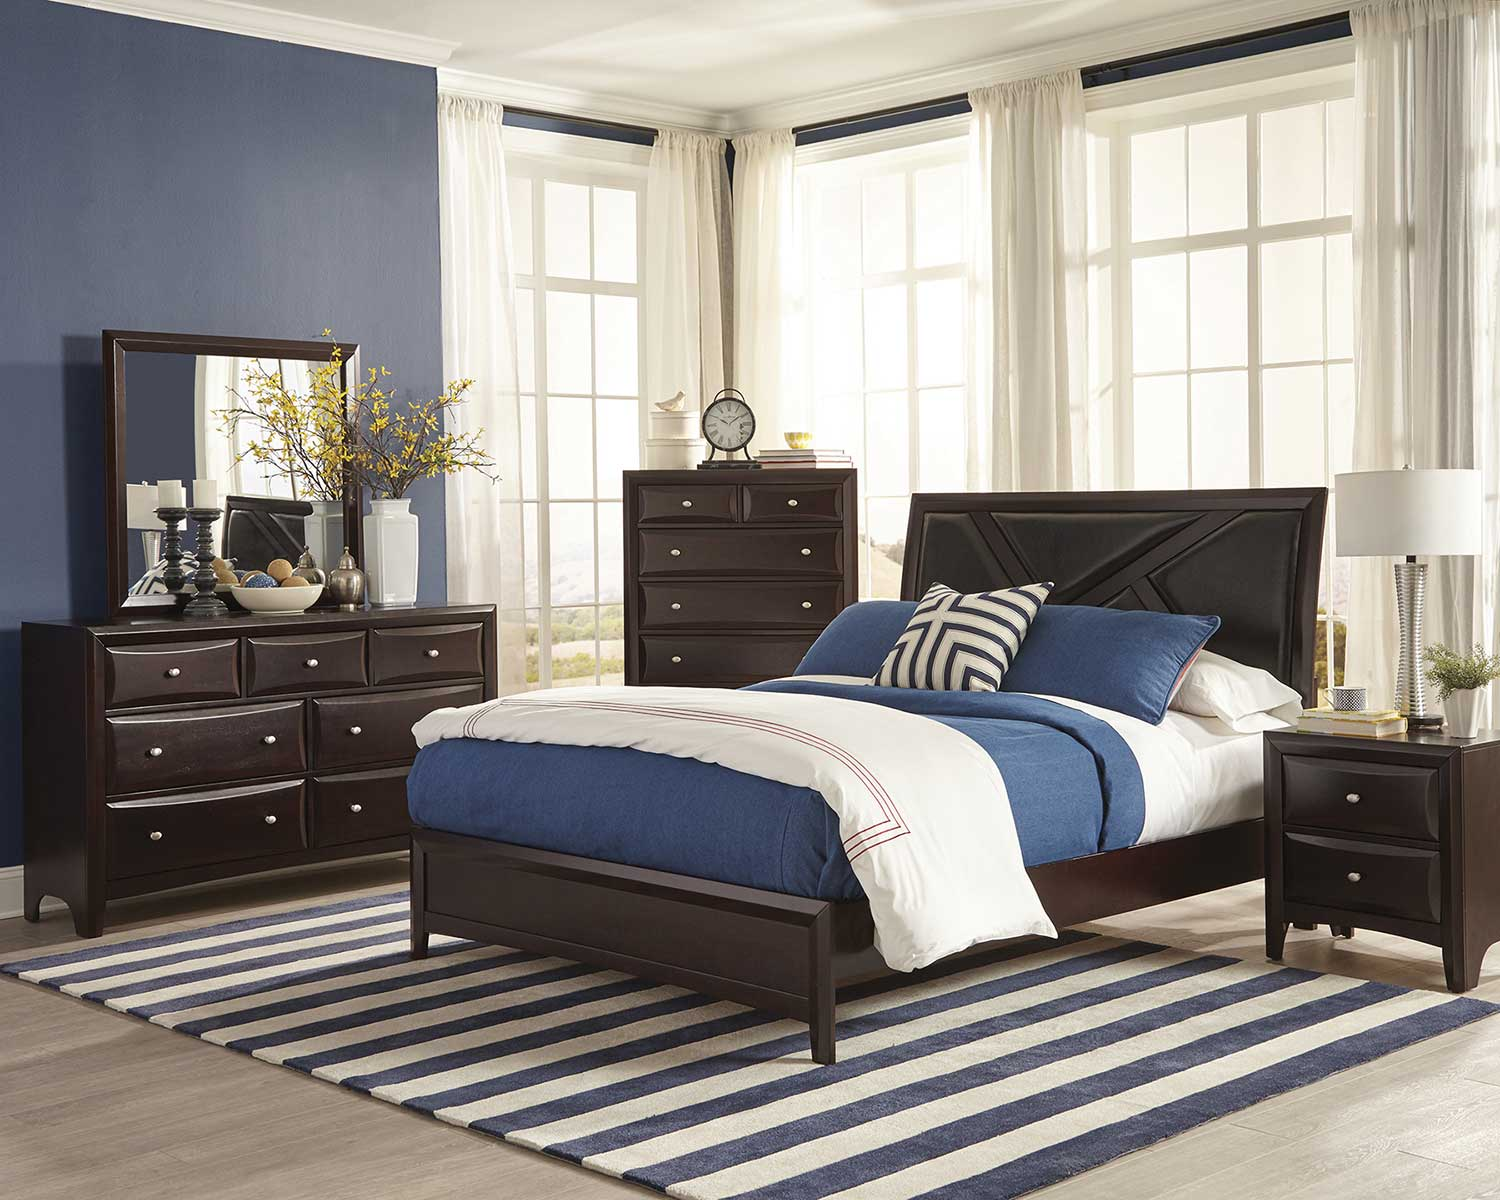 coaster bedroom sets coaster rossville upholstered bedroom set cappuccino 11149